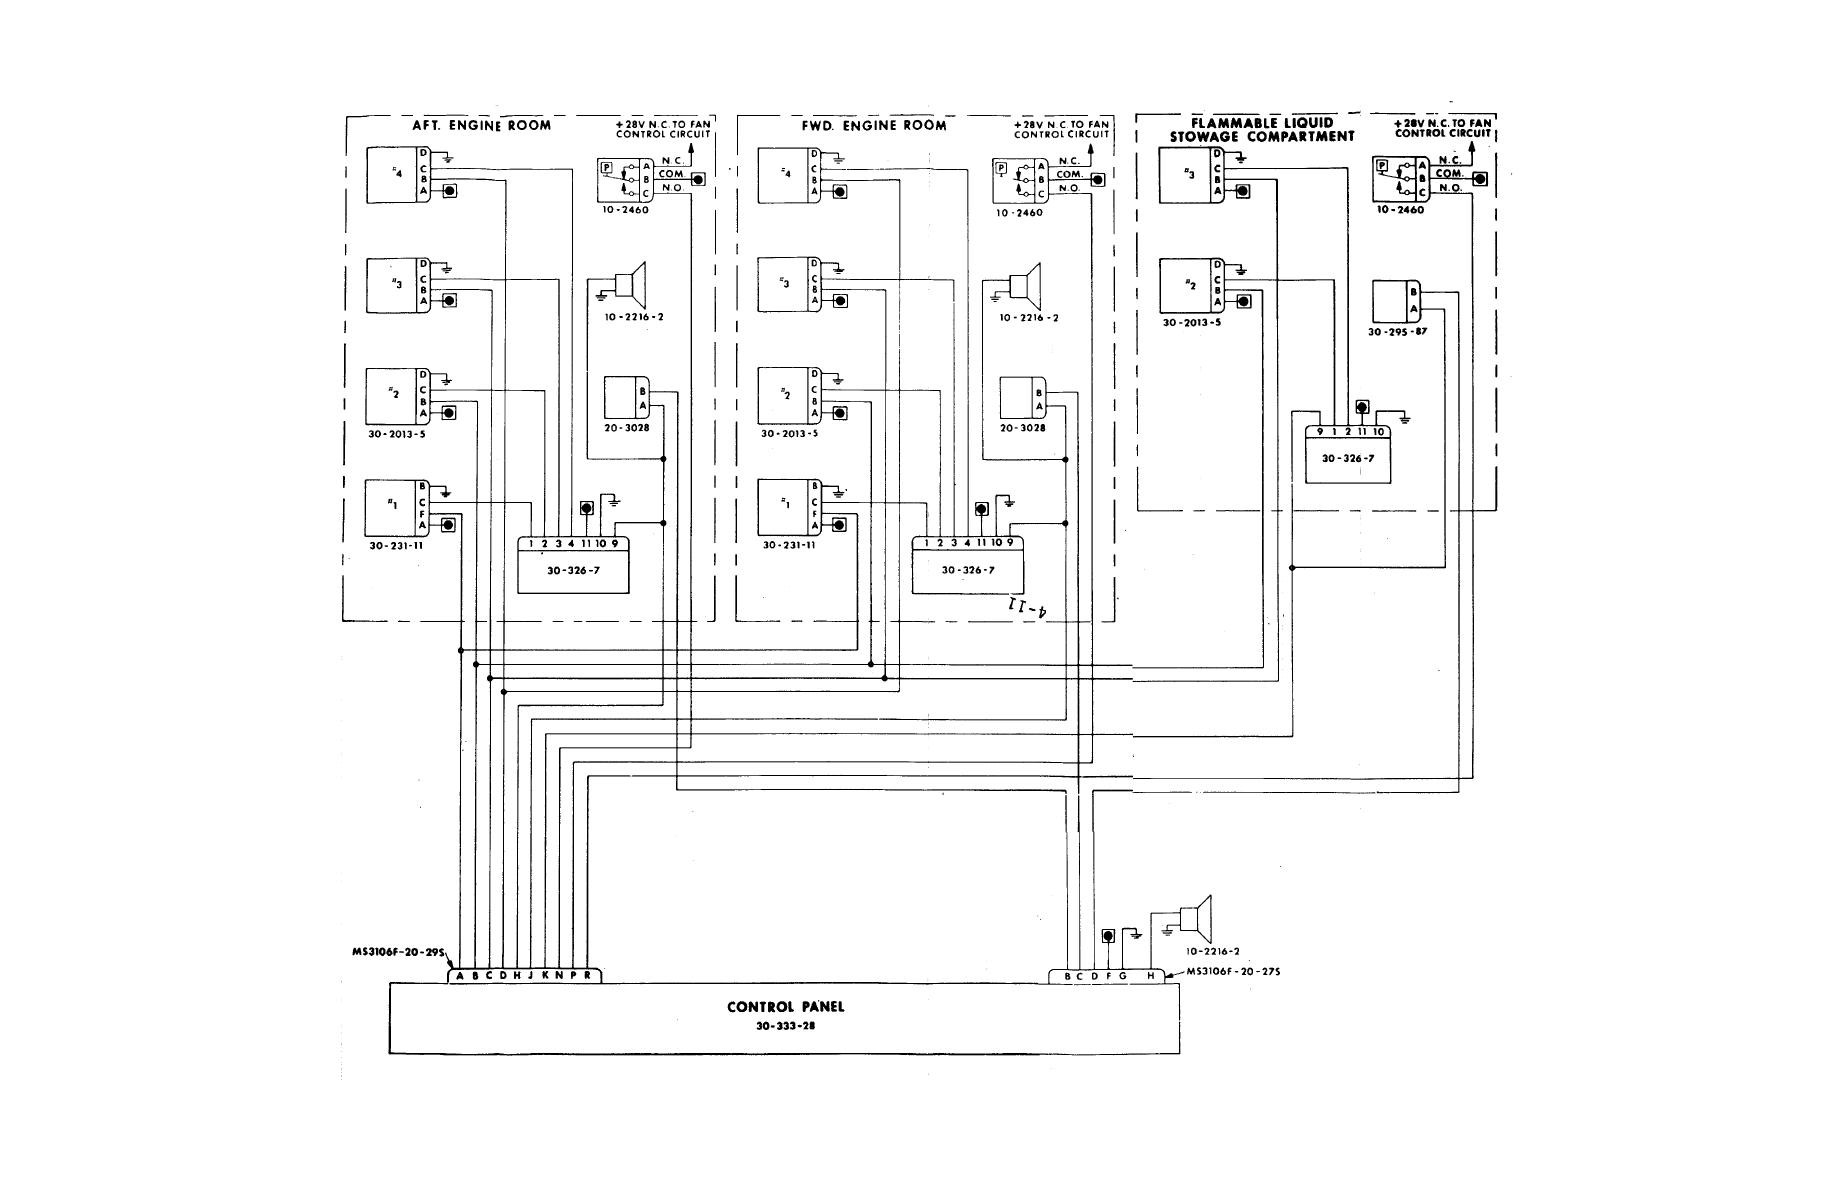 class b fire alarm wiring diagram Collection-Tm 55 1905 219 14 im To Wiring Diagram For Fire Alarm System Pull Station 4 13-h